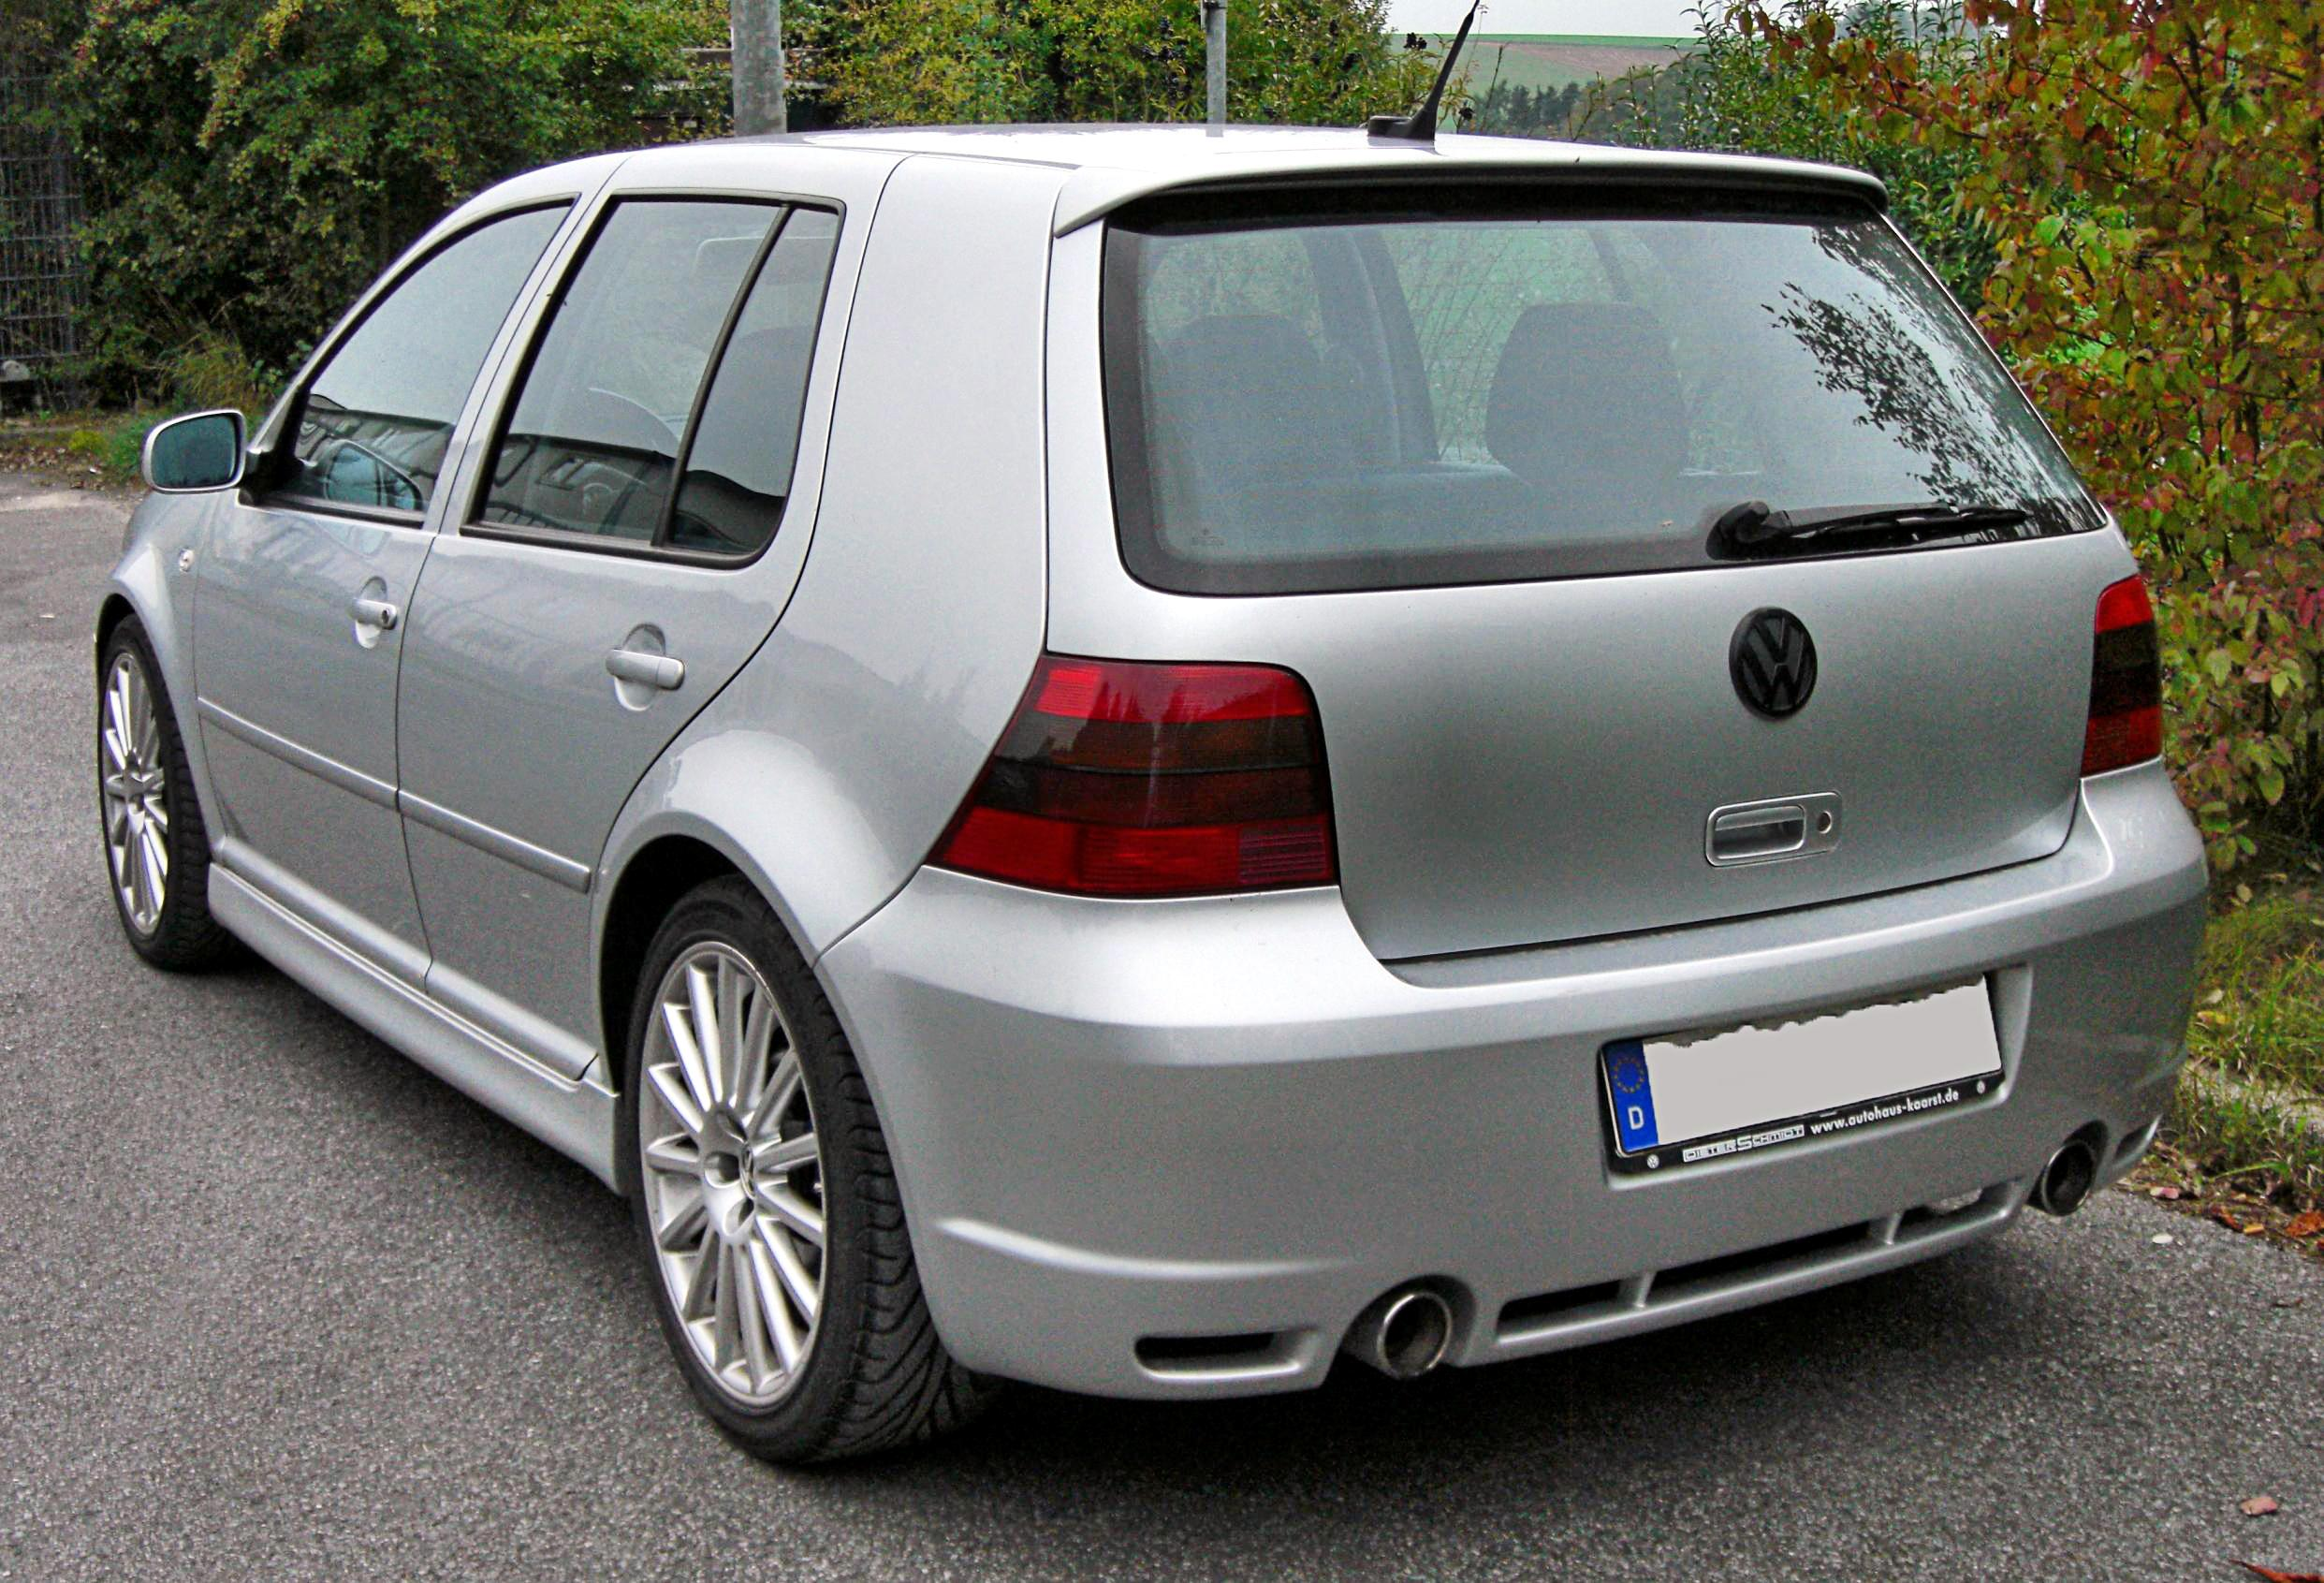 vw golf 4 r32 technical details history photos on better parts ltd